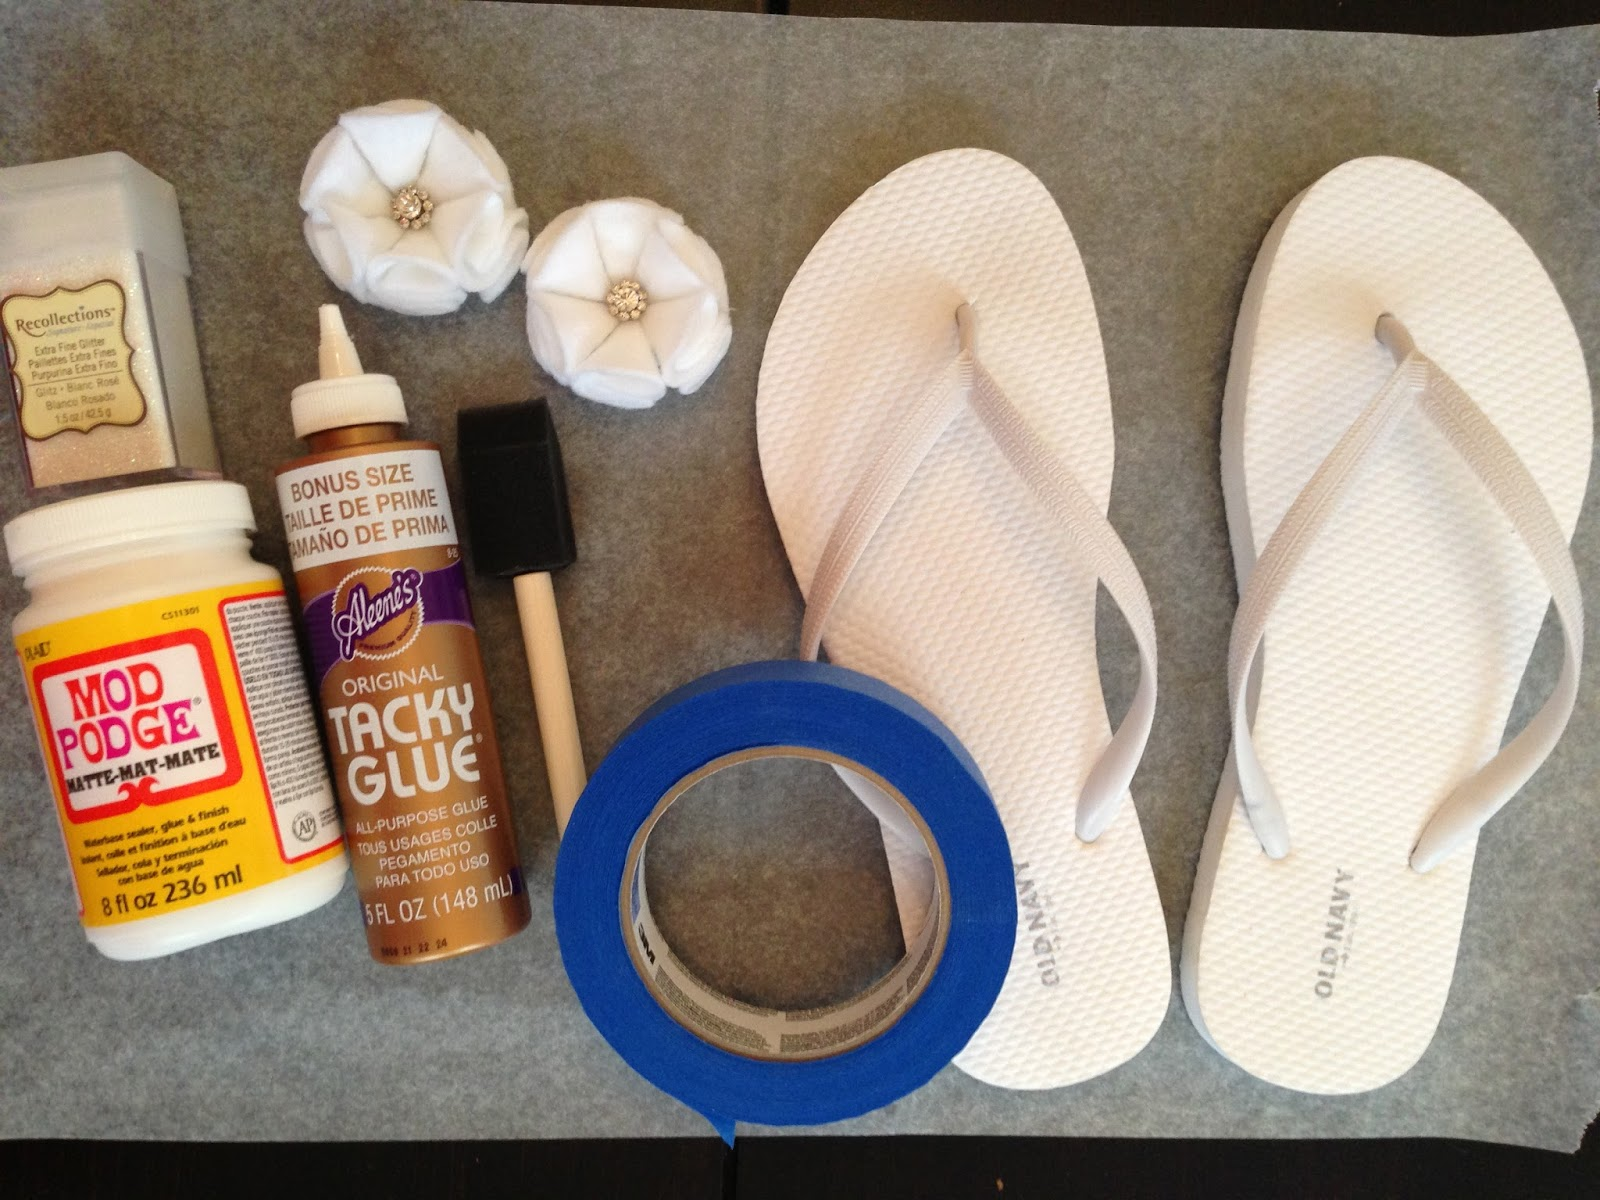 Wrap Painters Tape Around The Edges On The Flip Flop Straps To Prevent Stray Glue Glitter From Getting All Over The Place